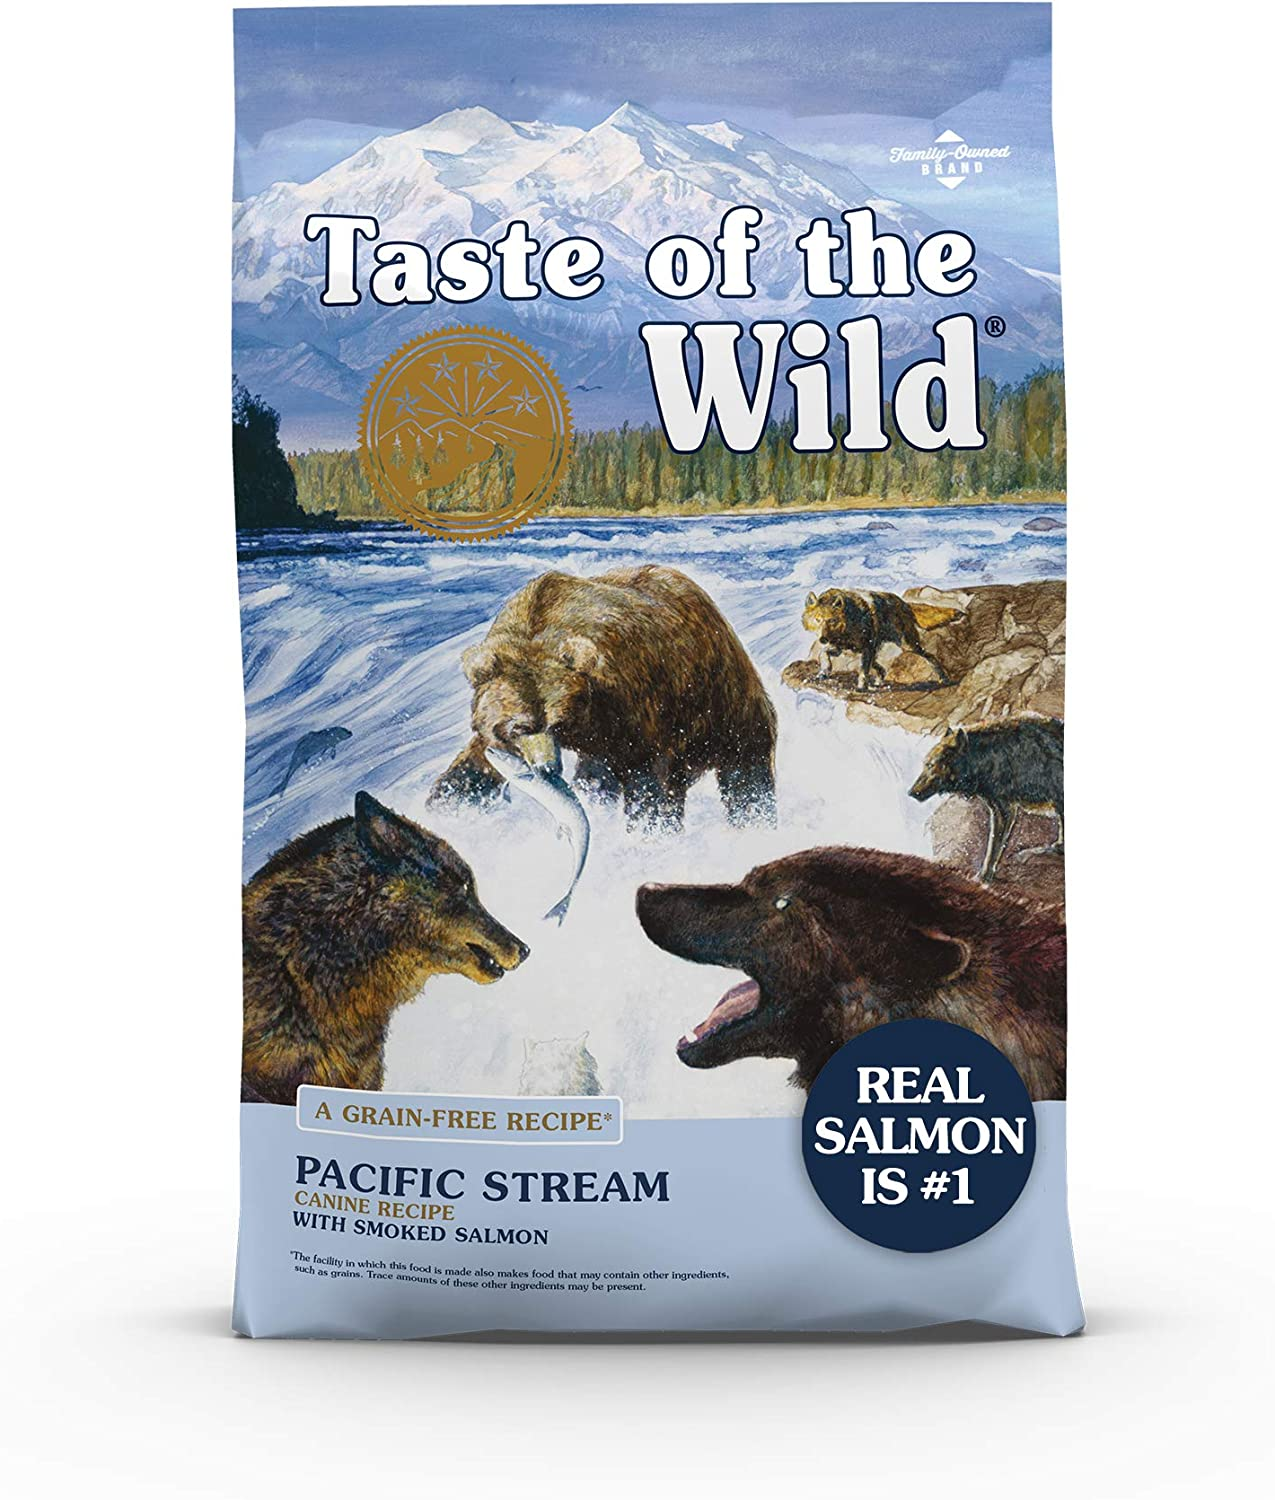 Taste of the Wild Salmon Dog Food